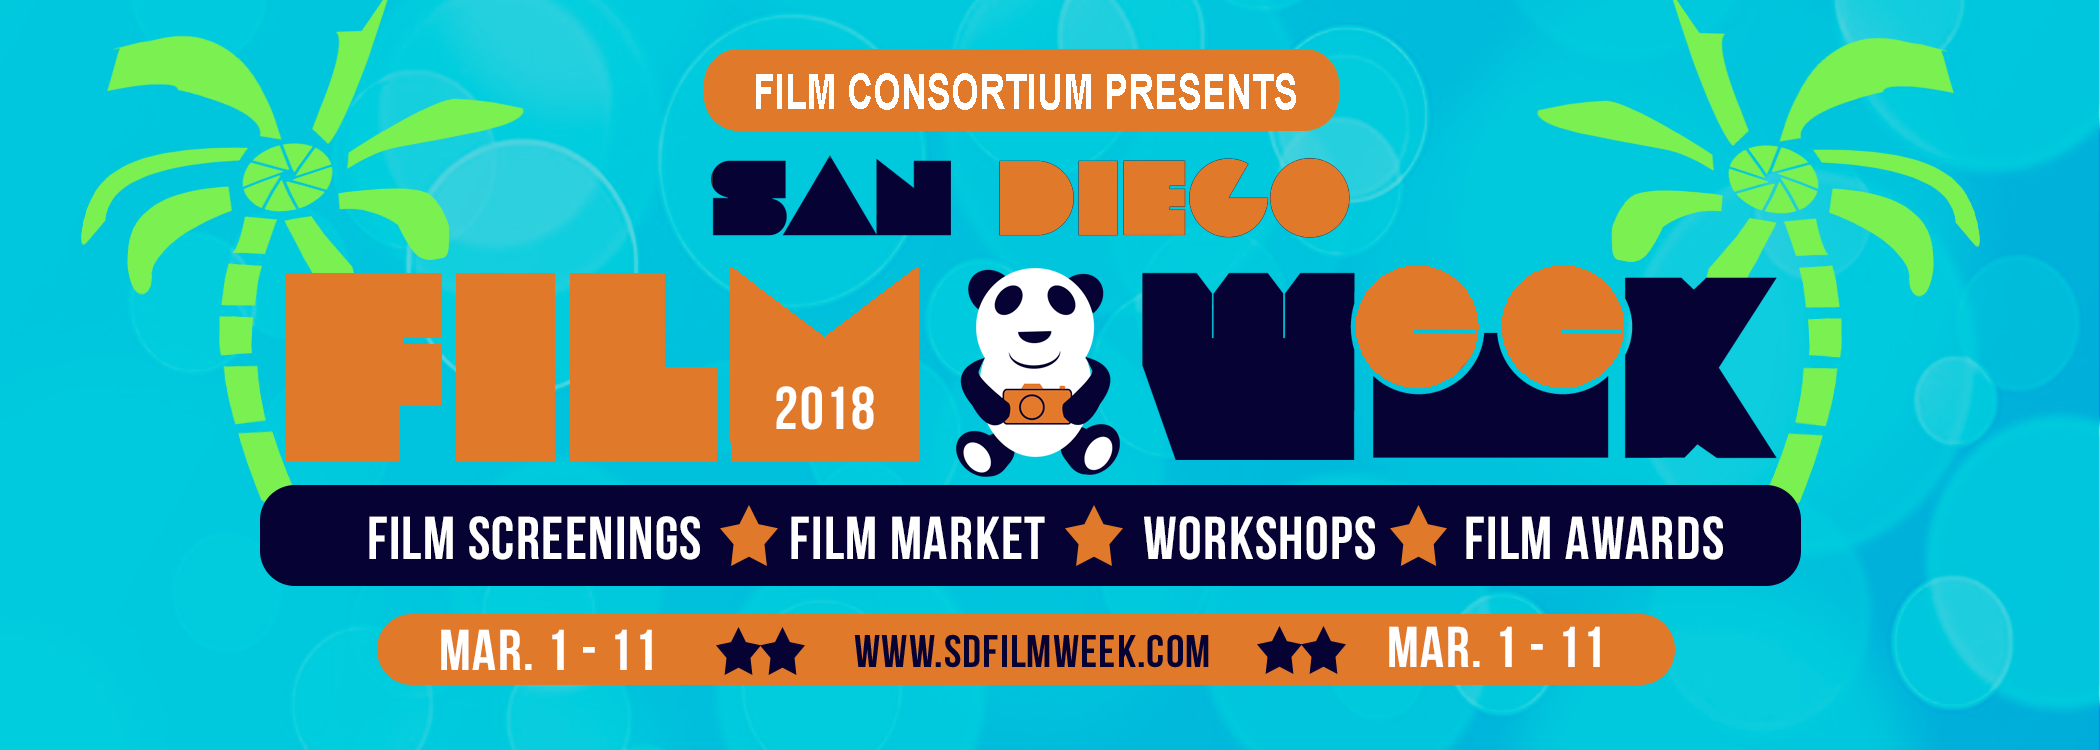 San Diego Film Week; Featuring selected shorts presented by NewFilmmakers Los Angeles